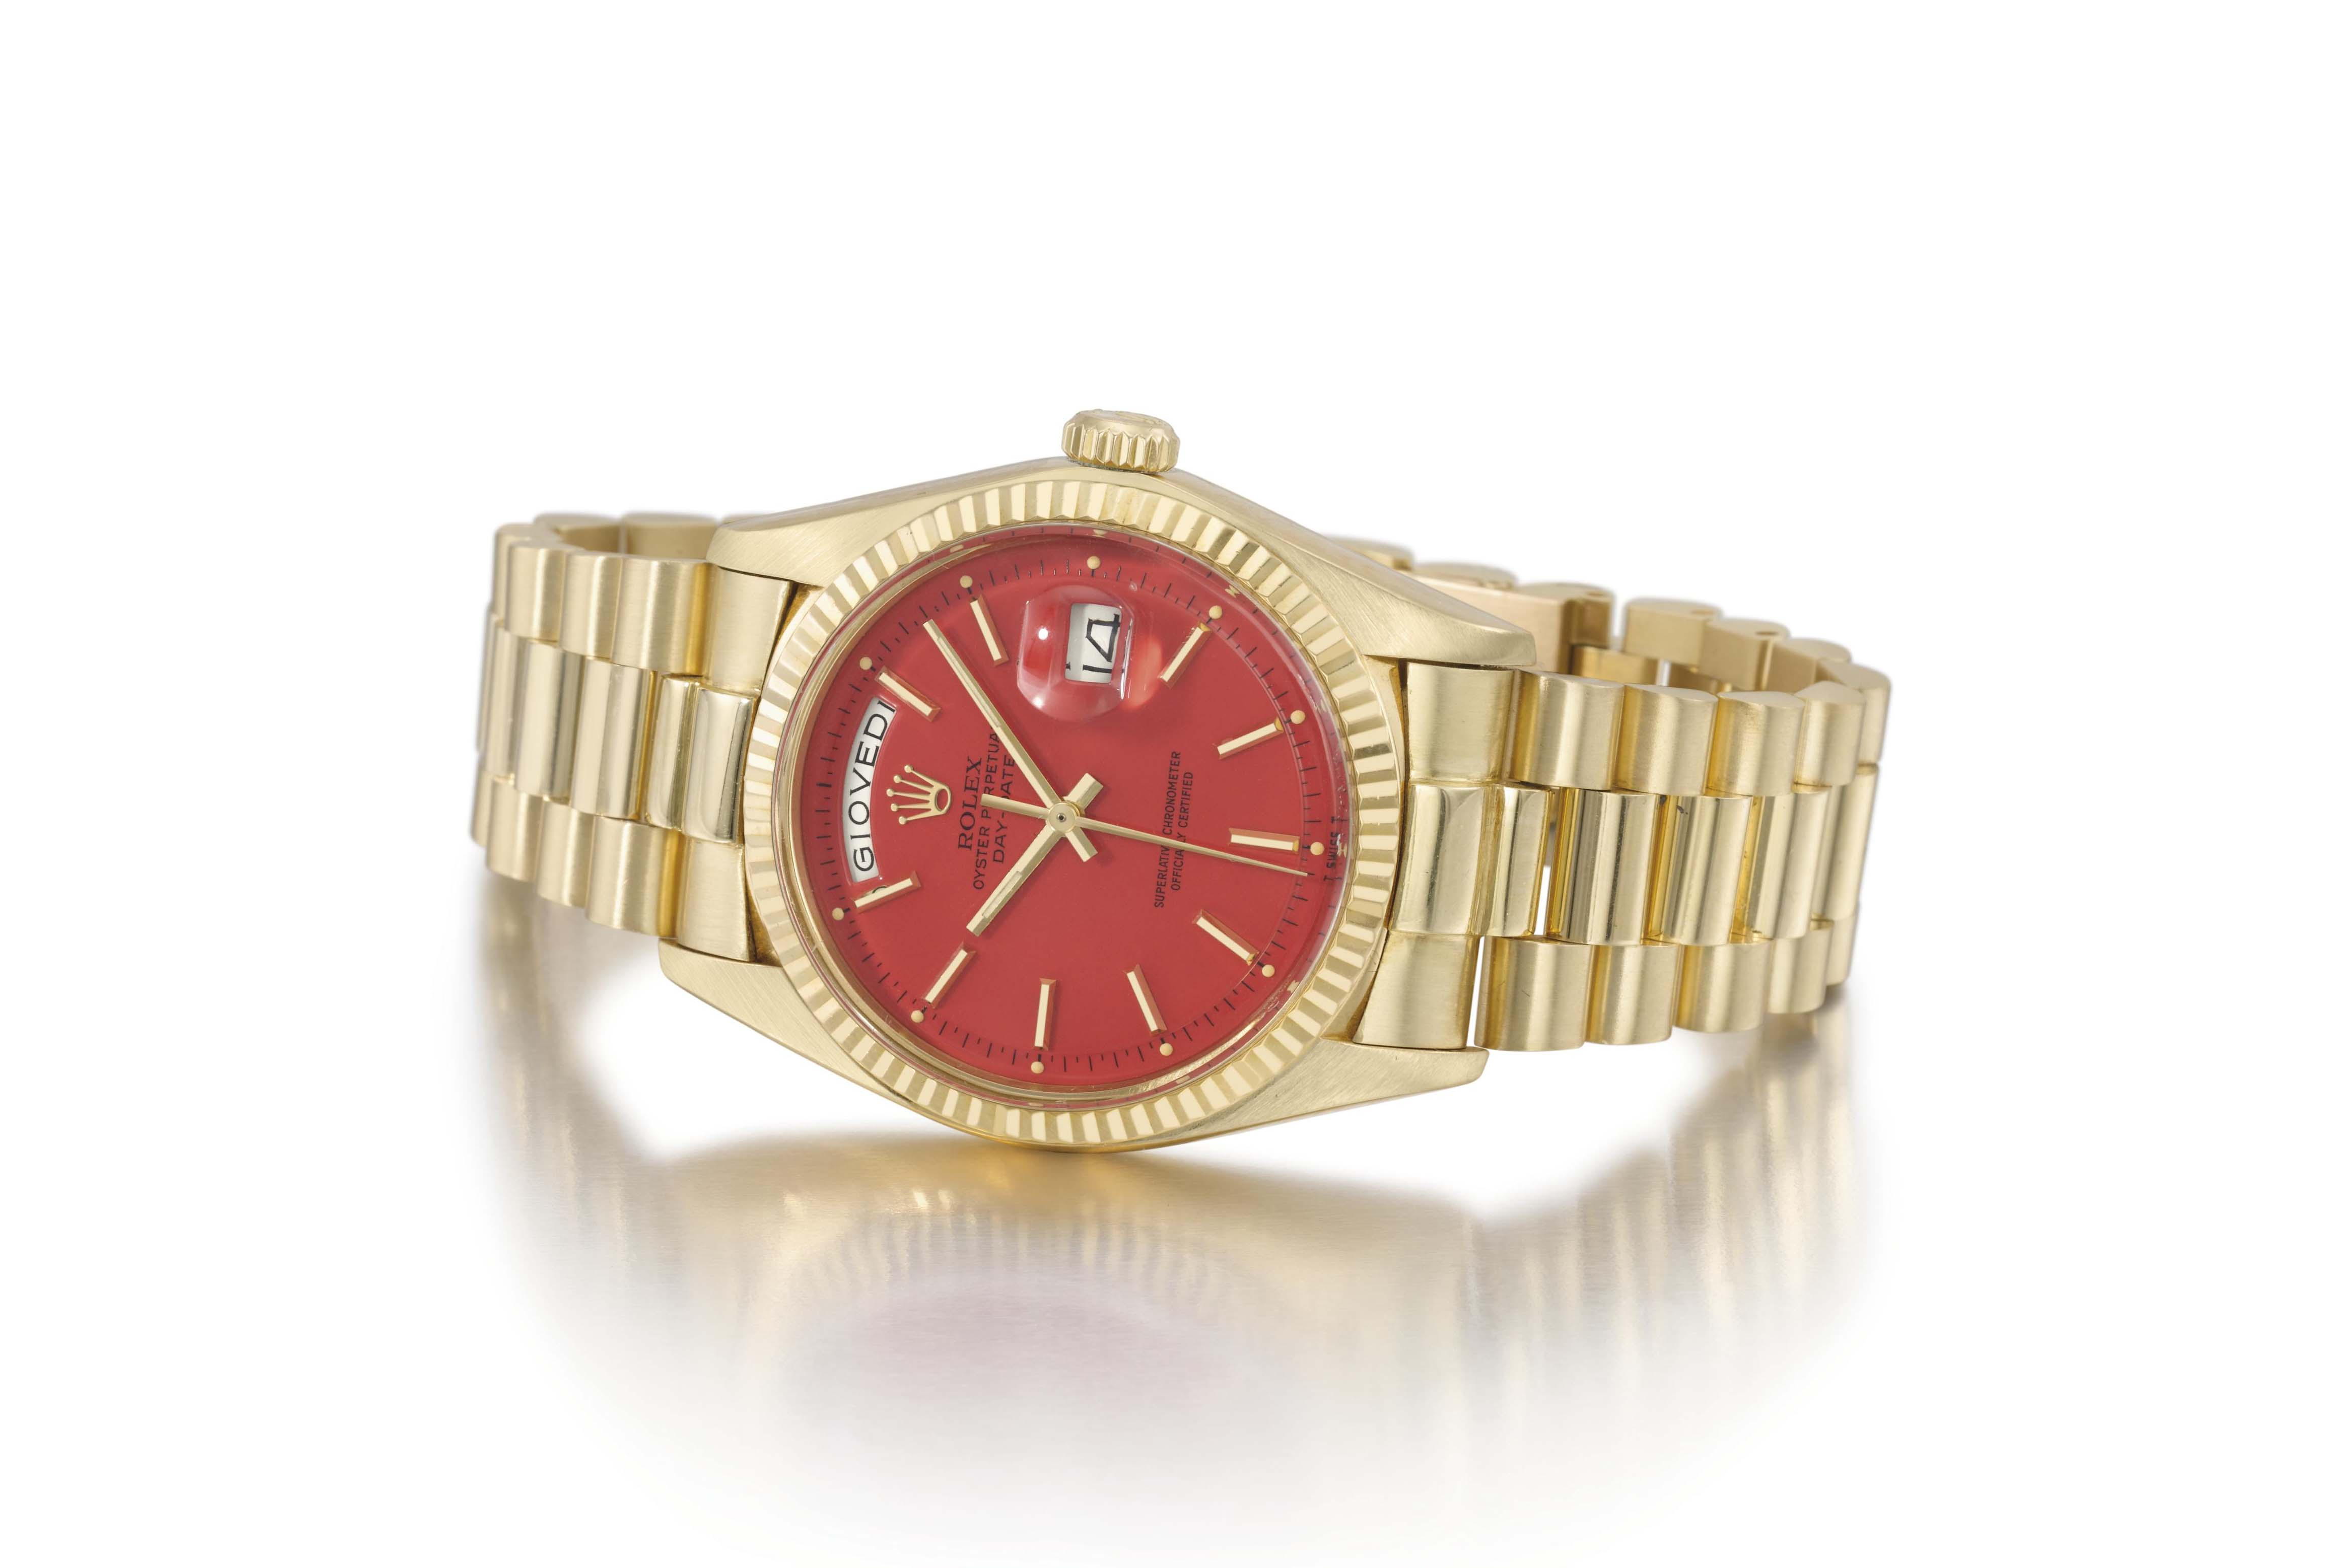 Rolex. An attractive 18K gold automatic calendar wristwatch with sweep centre seconds and coral-red lacquered dial